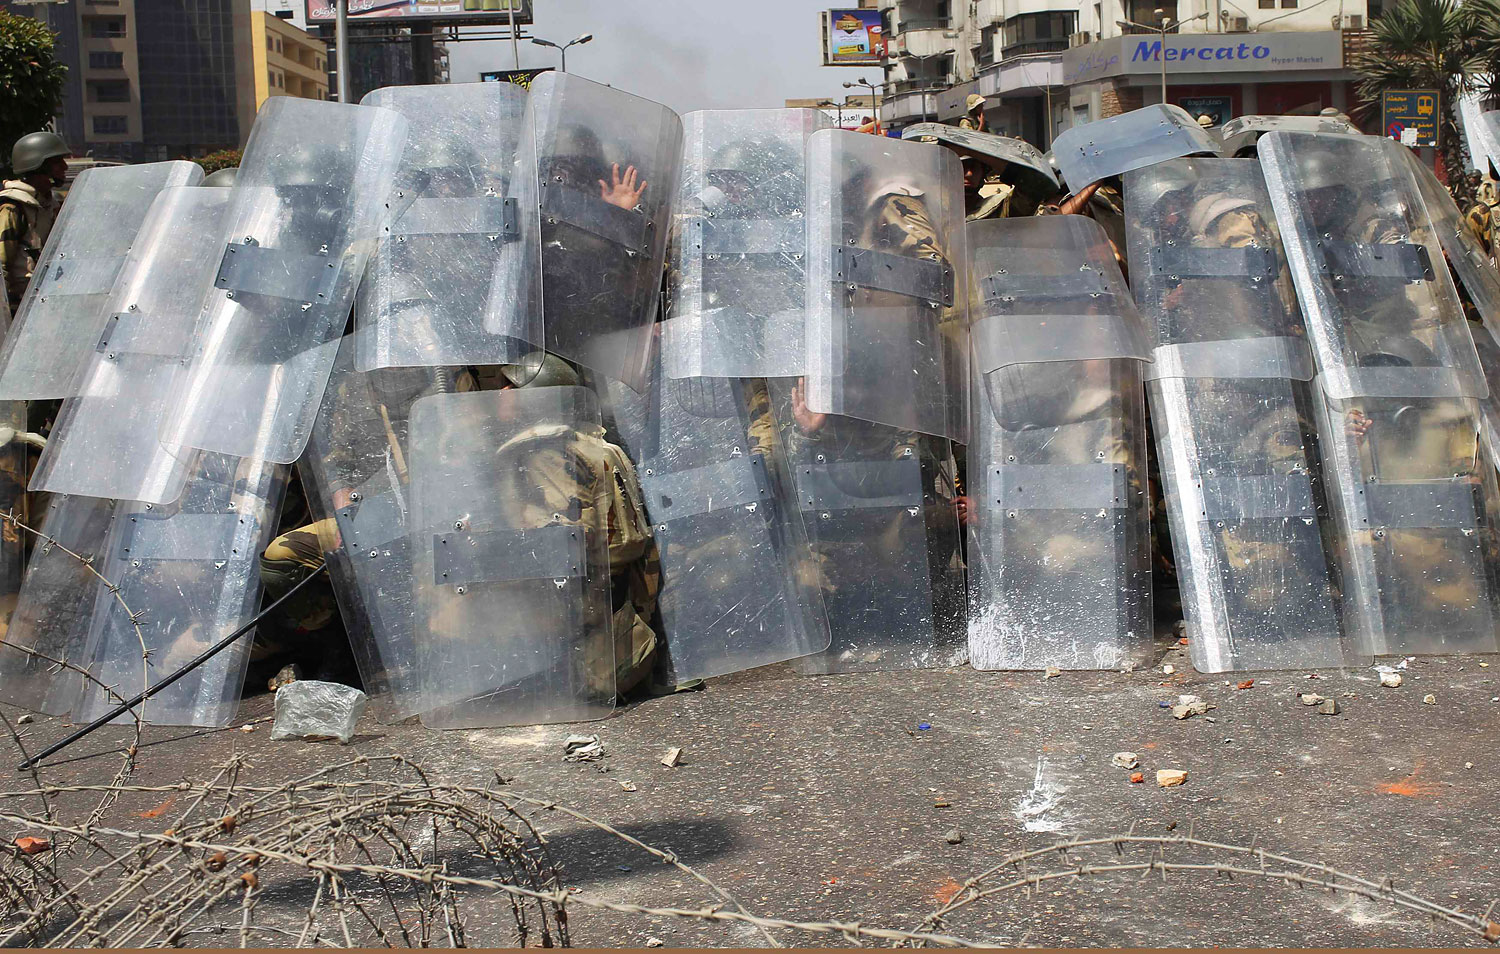 Riot police and army soldiers protect themselves with riot shields as members of the Muslim Brotherhood and supporters of ousted Egyptian President Mohamed Mursi throw stones during clashes around the area of Rabaa Adawiya square, where they are camping, in Cairo, Aug. 14, 2013.